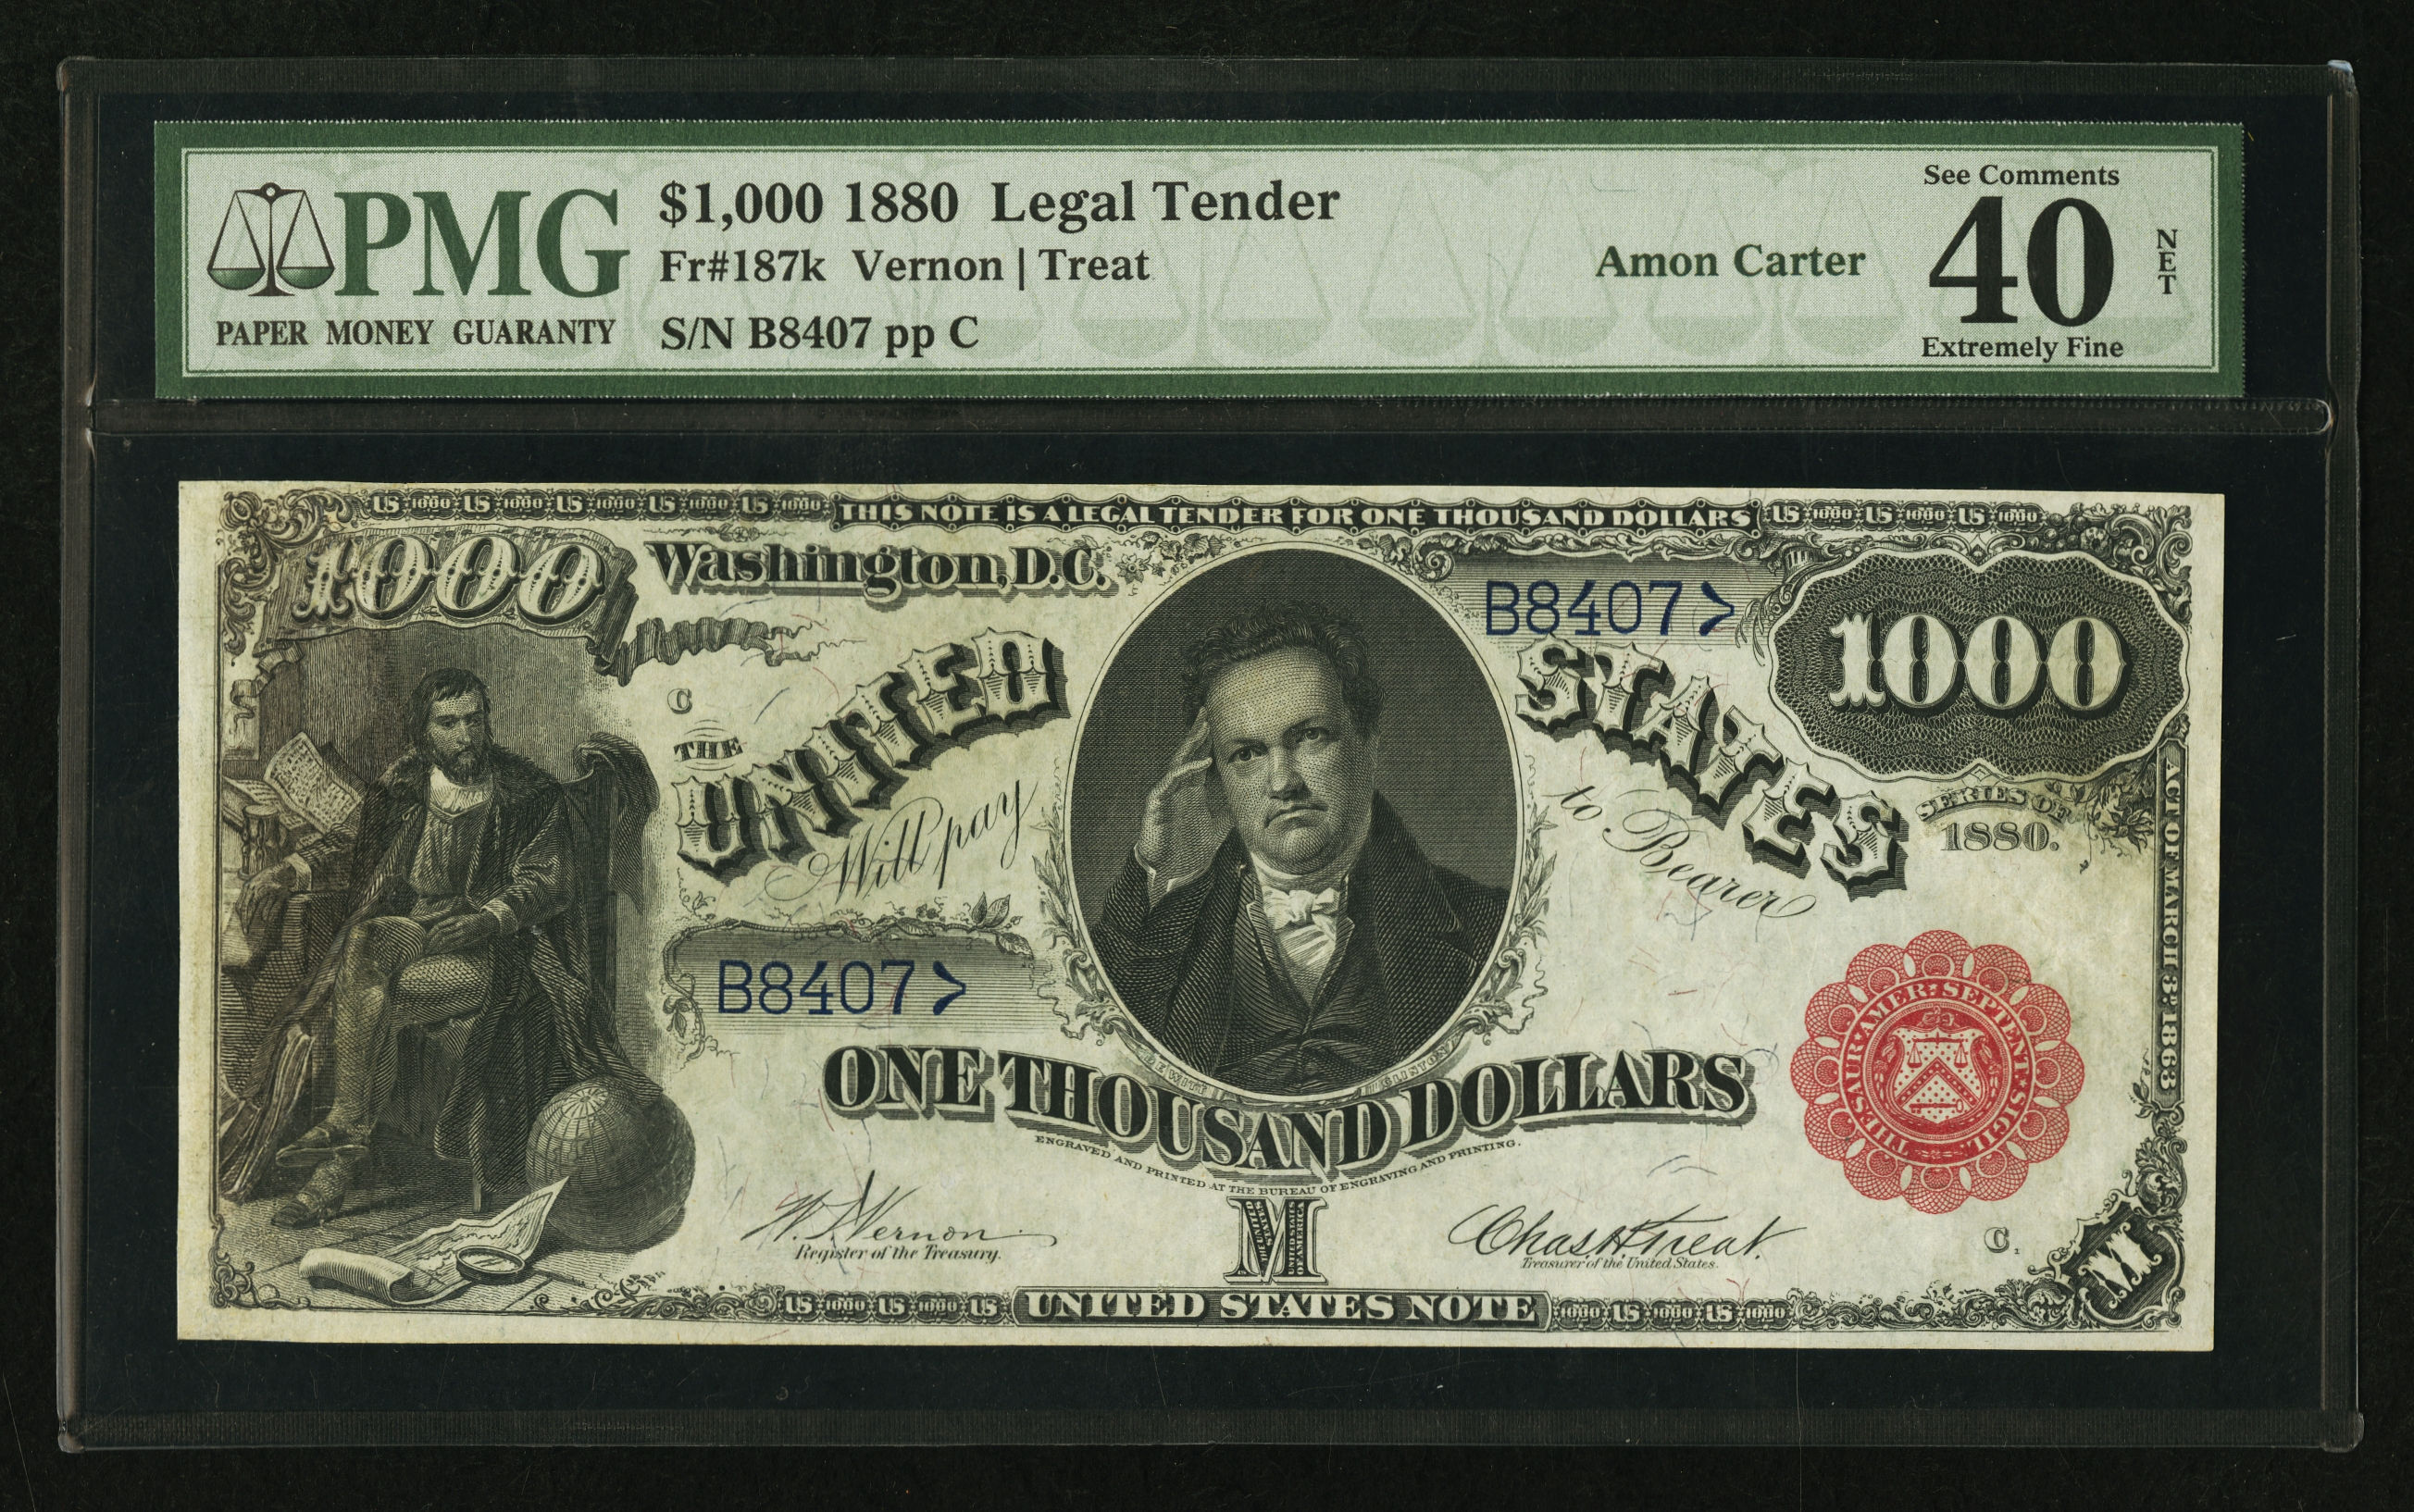 Fr. 187K 1880 $100 Legal Tender - Vernon-Treat - ex. Amon Carter, PMG Extremely Fine 40 with comments